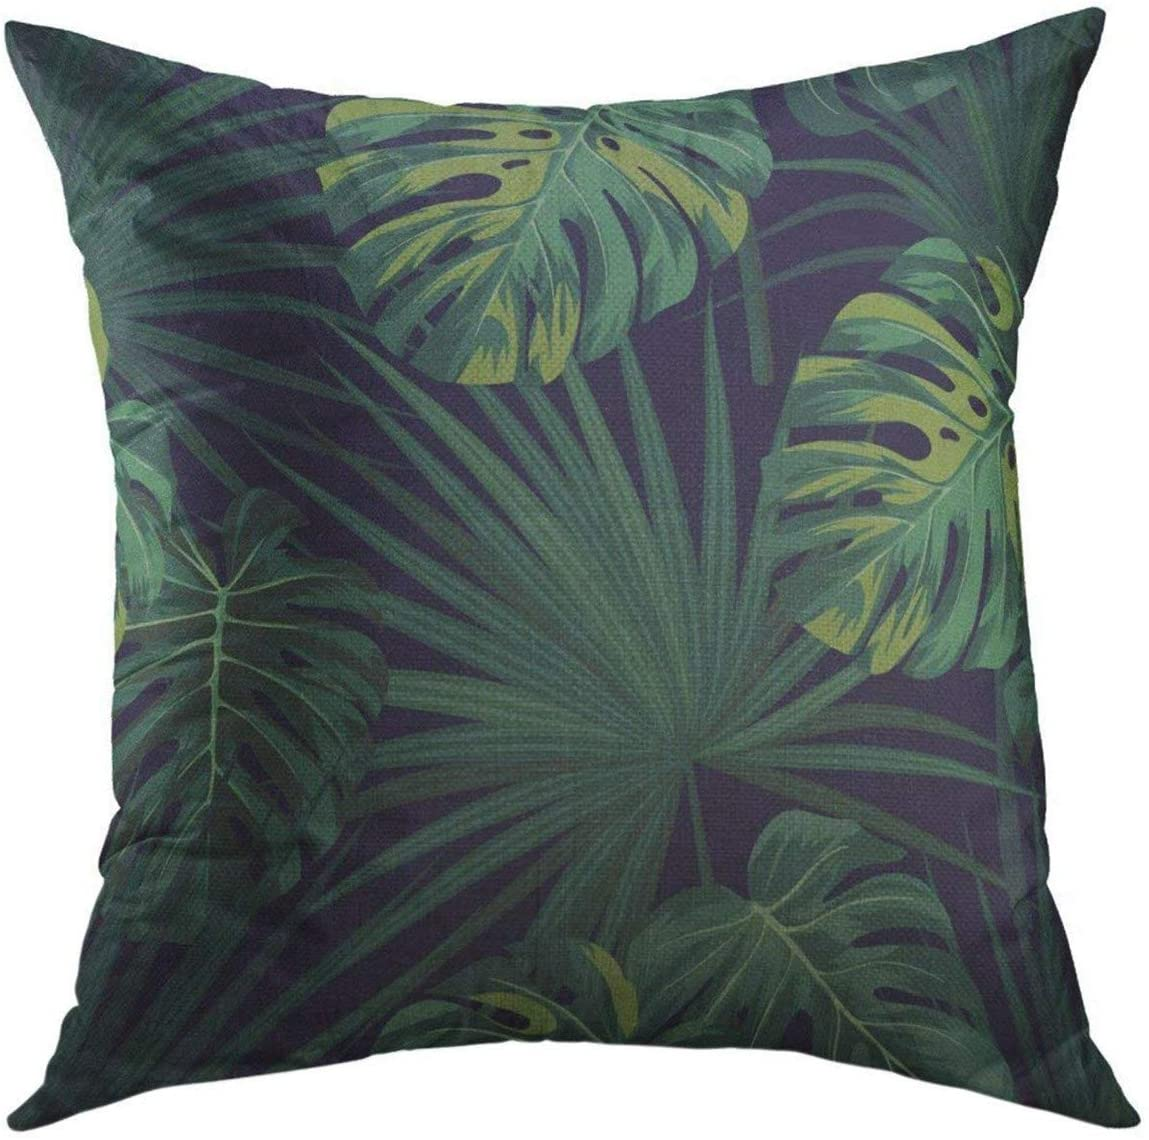 Mugod Decorative Throw Pillow Cover for Couch Sofa,Black Leaf Dark Tropical with Jungle Plants Pattern with Green Sabal Palm Monstera Leaves Floral Home Decor Pillow case 18x18 Inch